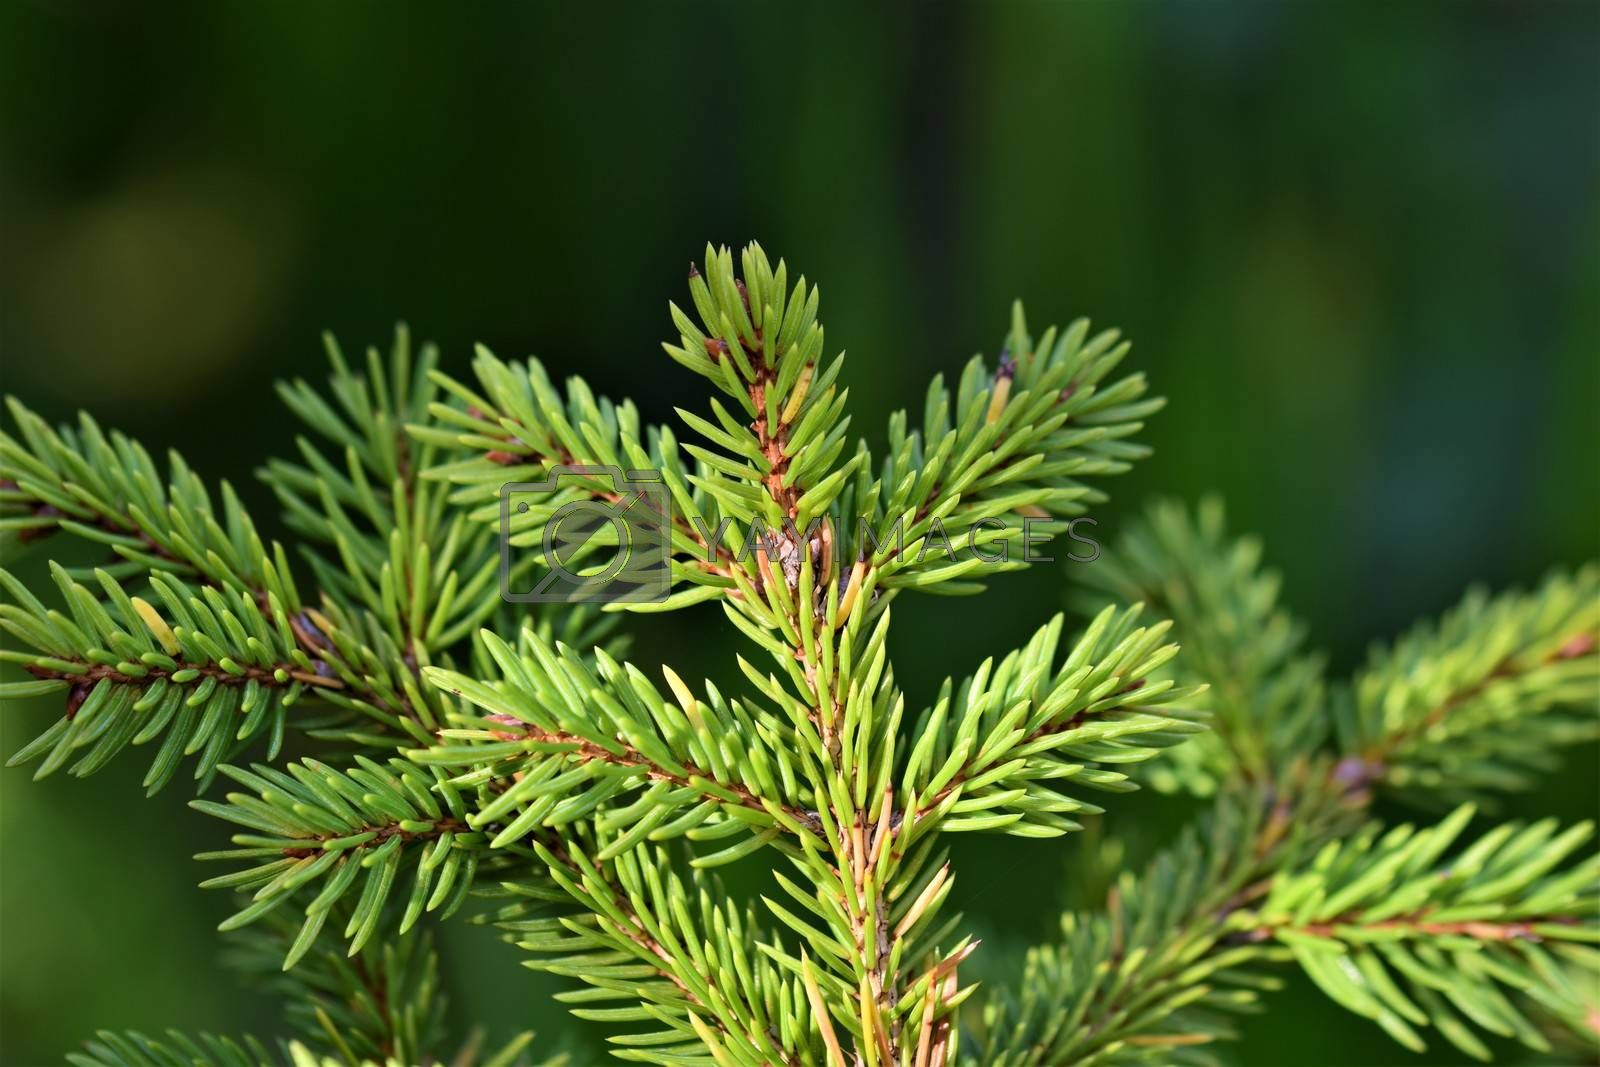 Close up of a fir branches against a green blurred ackground